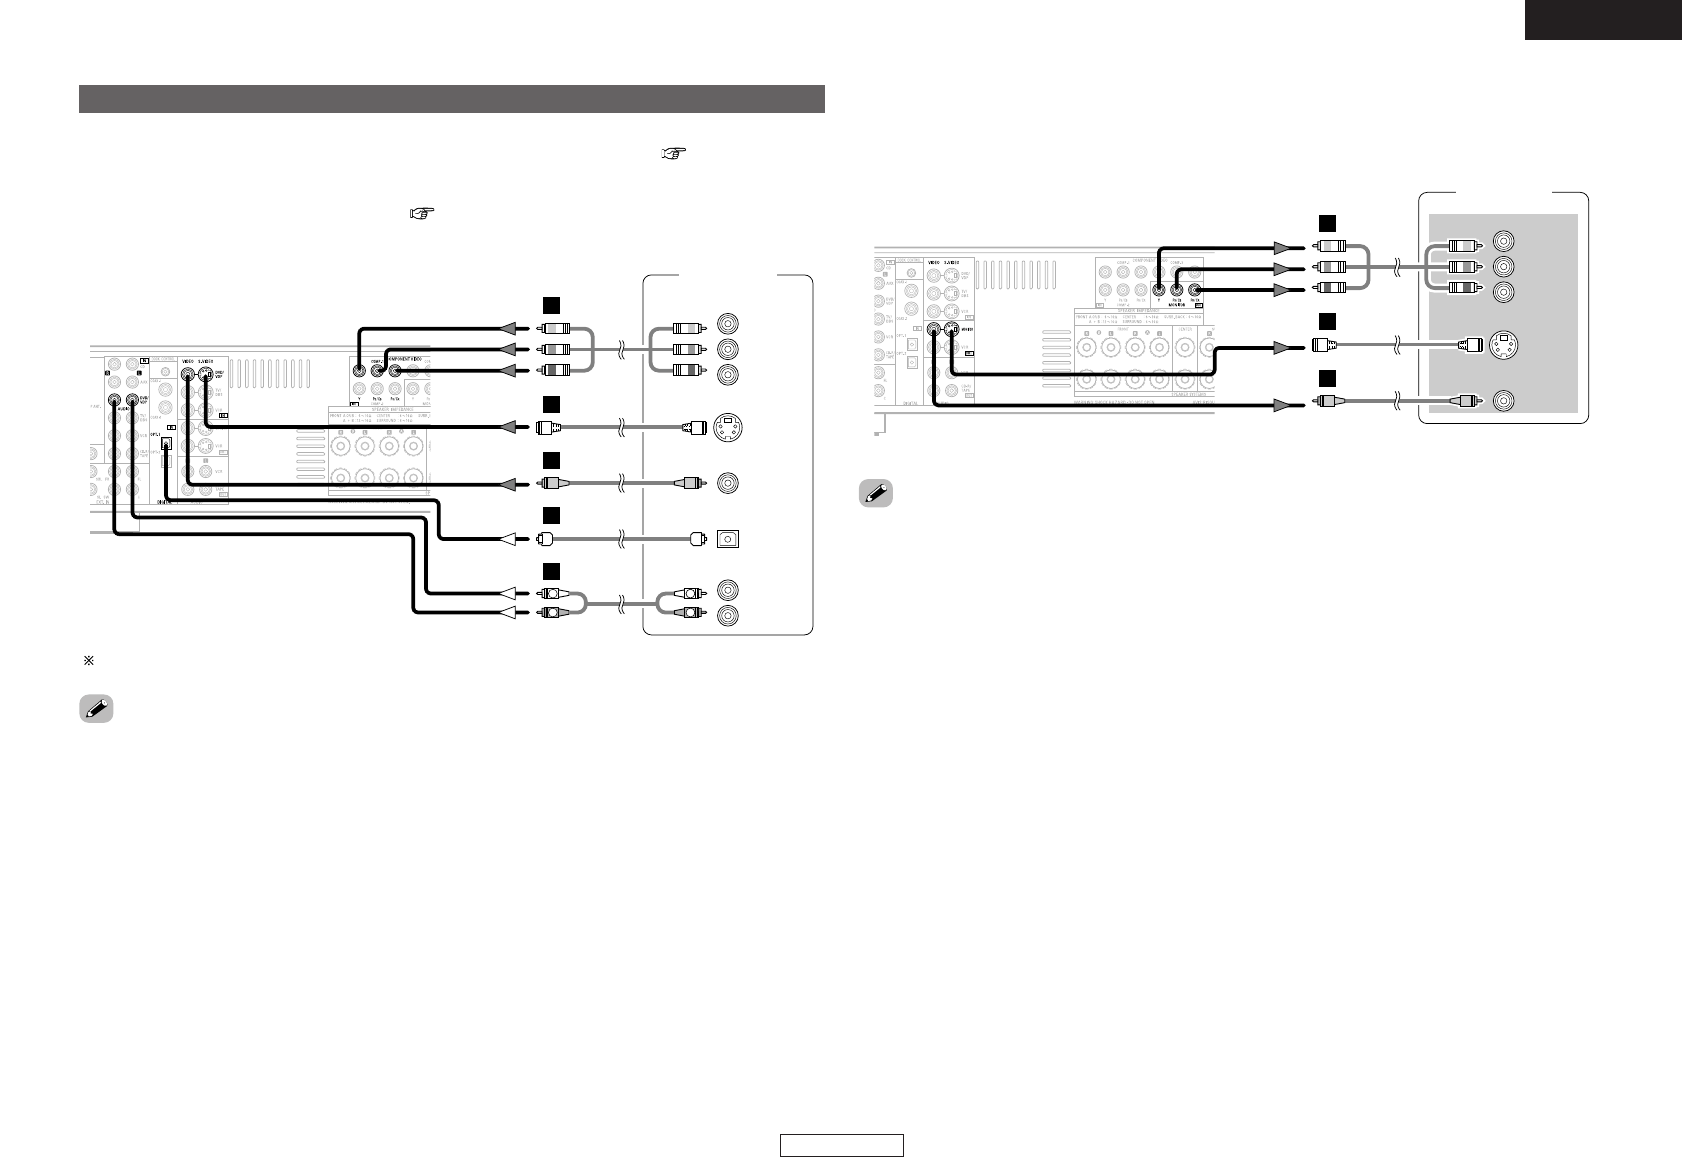 Page 13 of Denon Stereo Receiver AVR-1707 User Guide